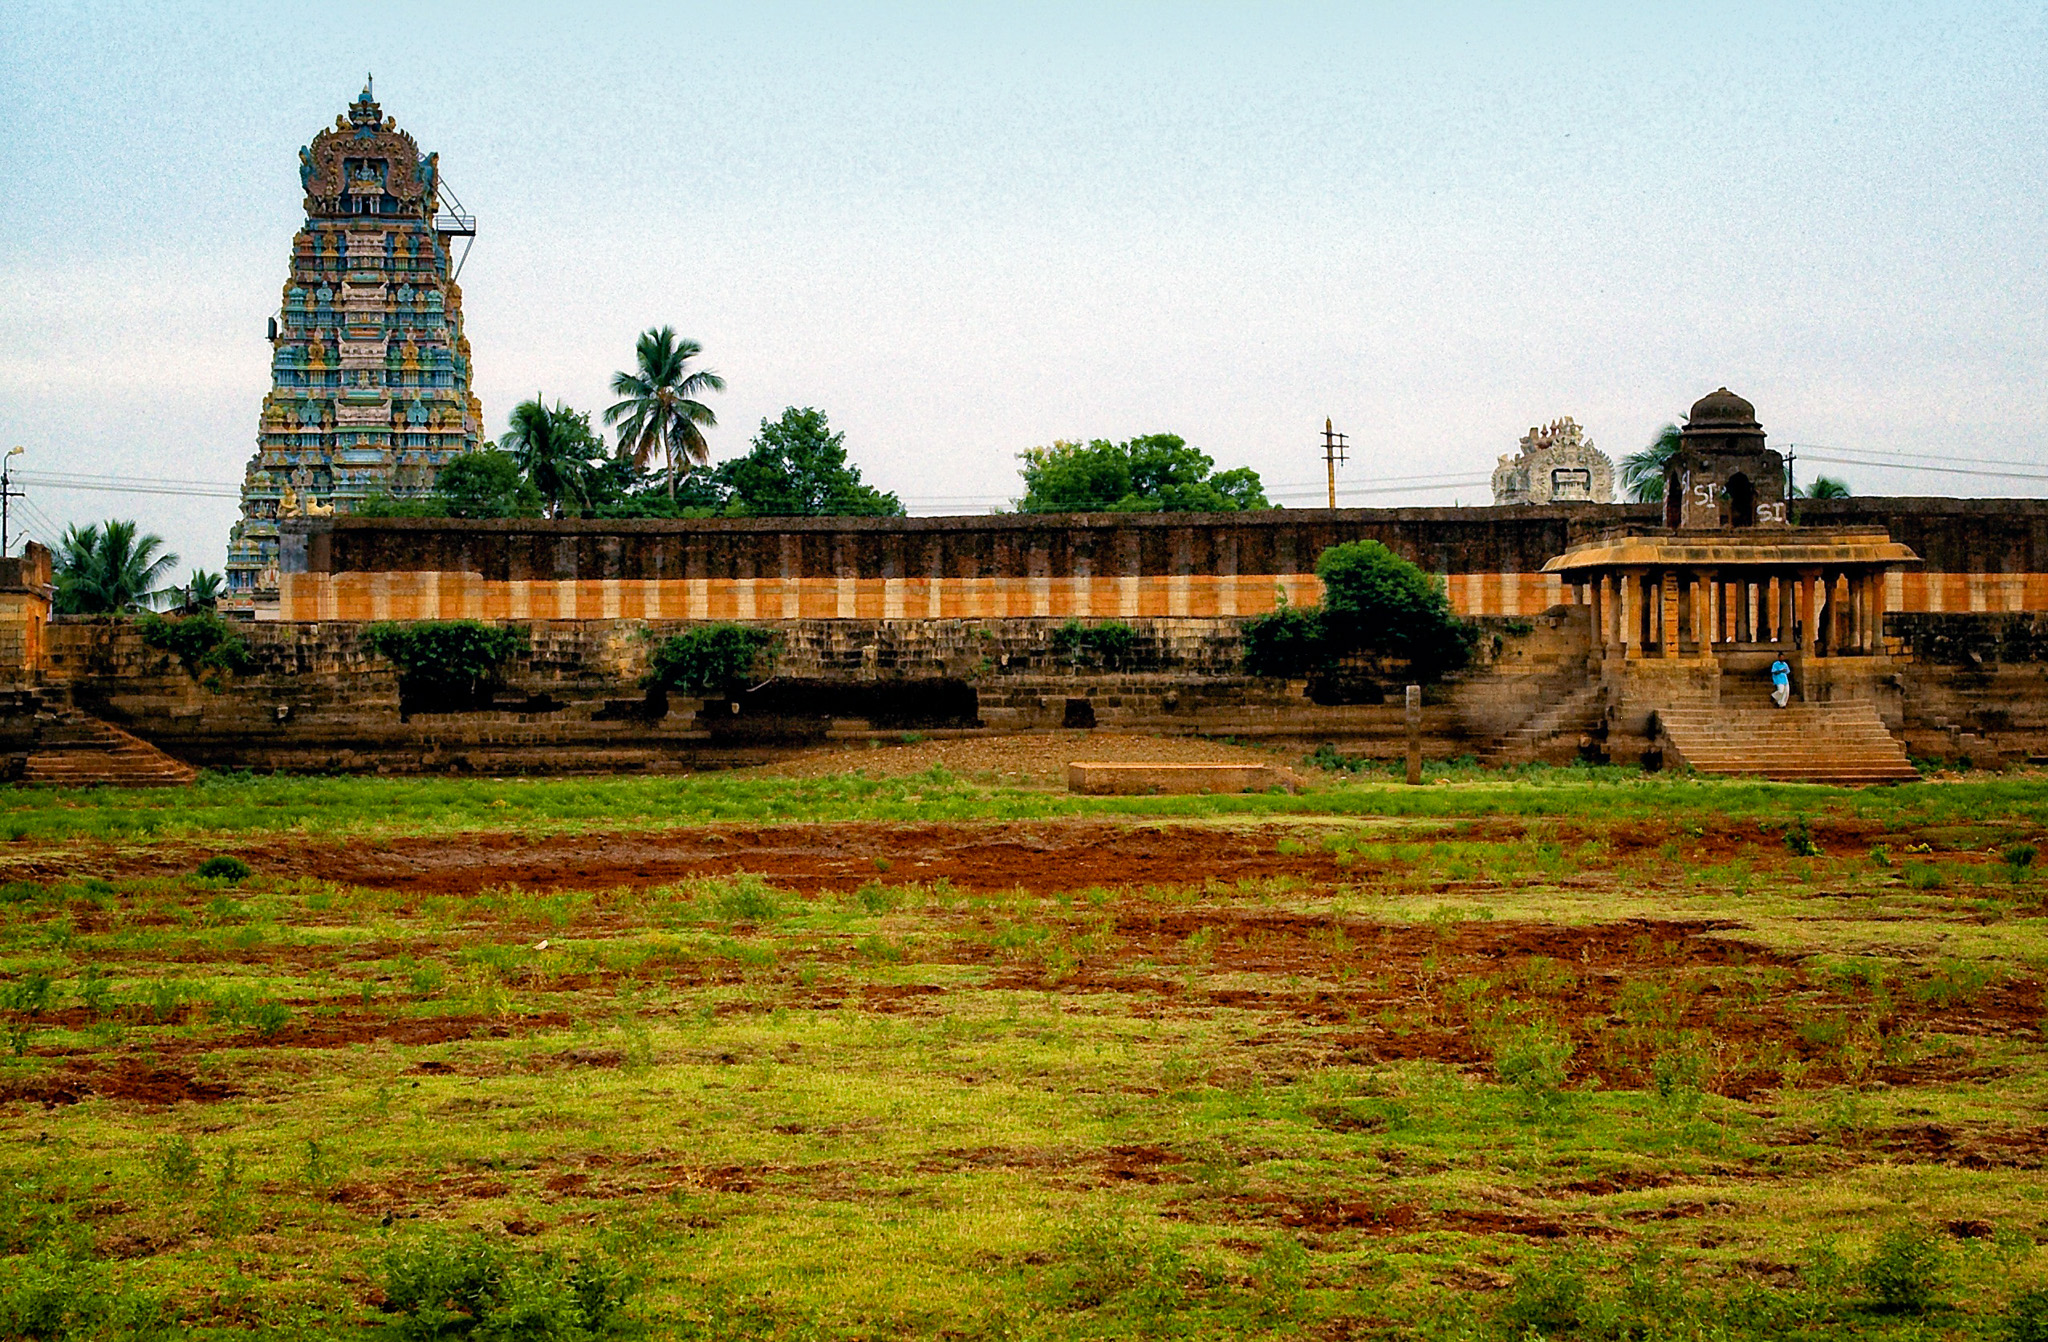 Side view of the temple tower from the dried lake. Nanguneri, Tamil Nadu, India